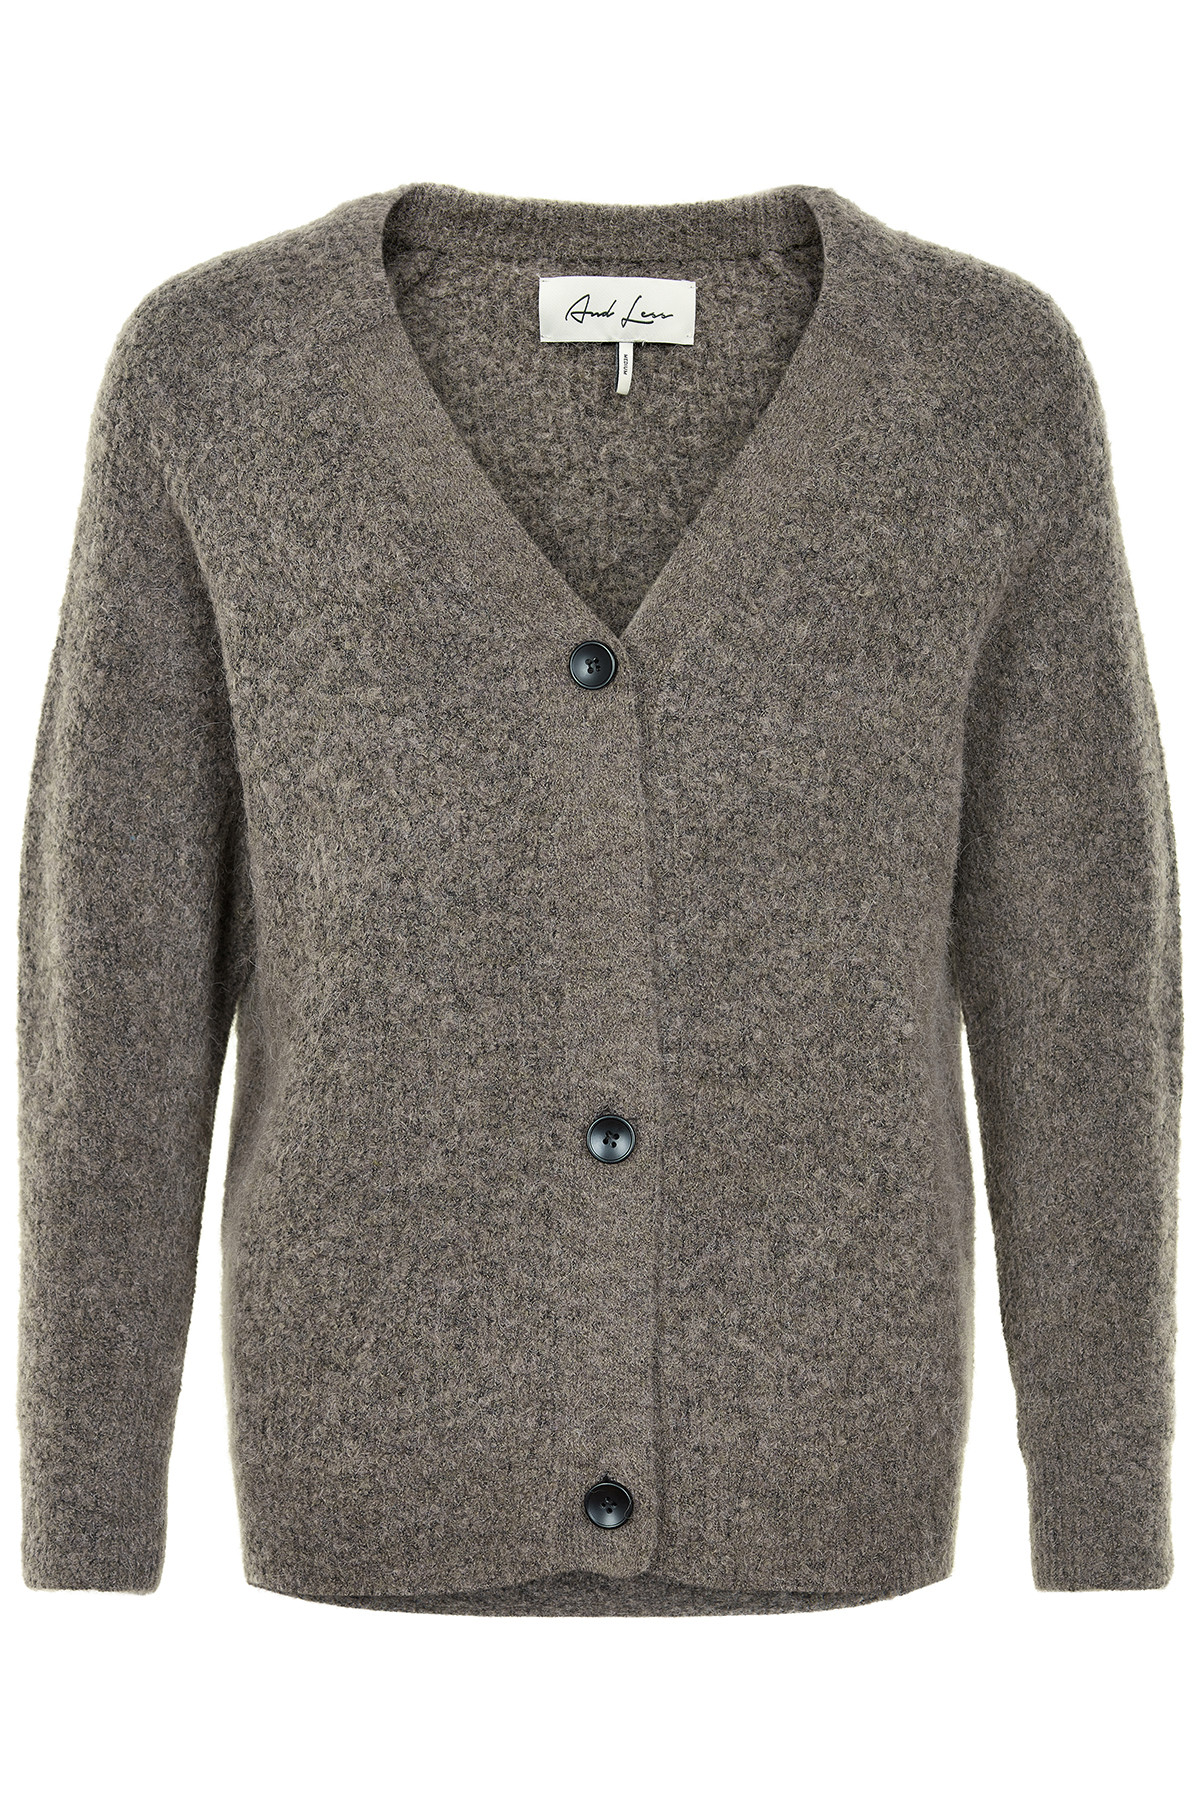 Image of   AND LESS ALENEN CARDIGAN 5519210 W (Walnut, XS)